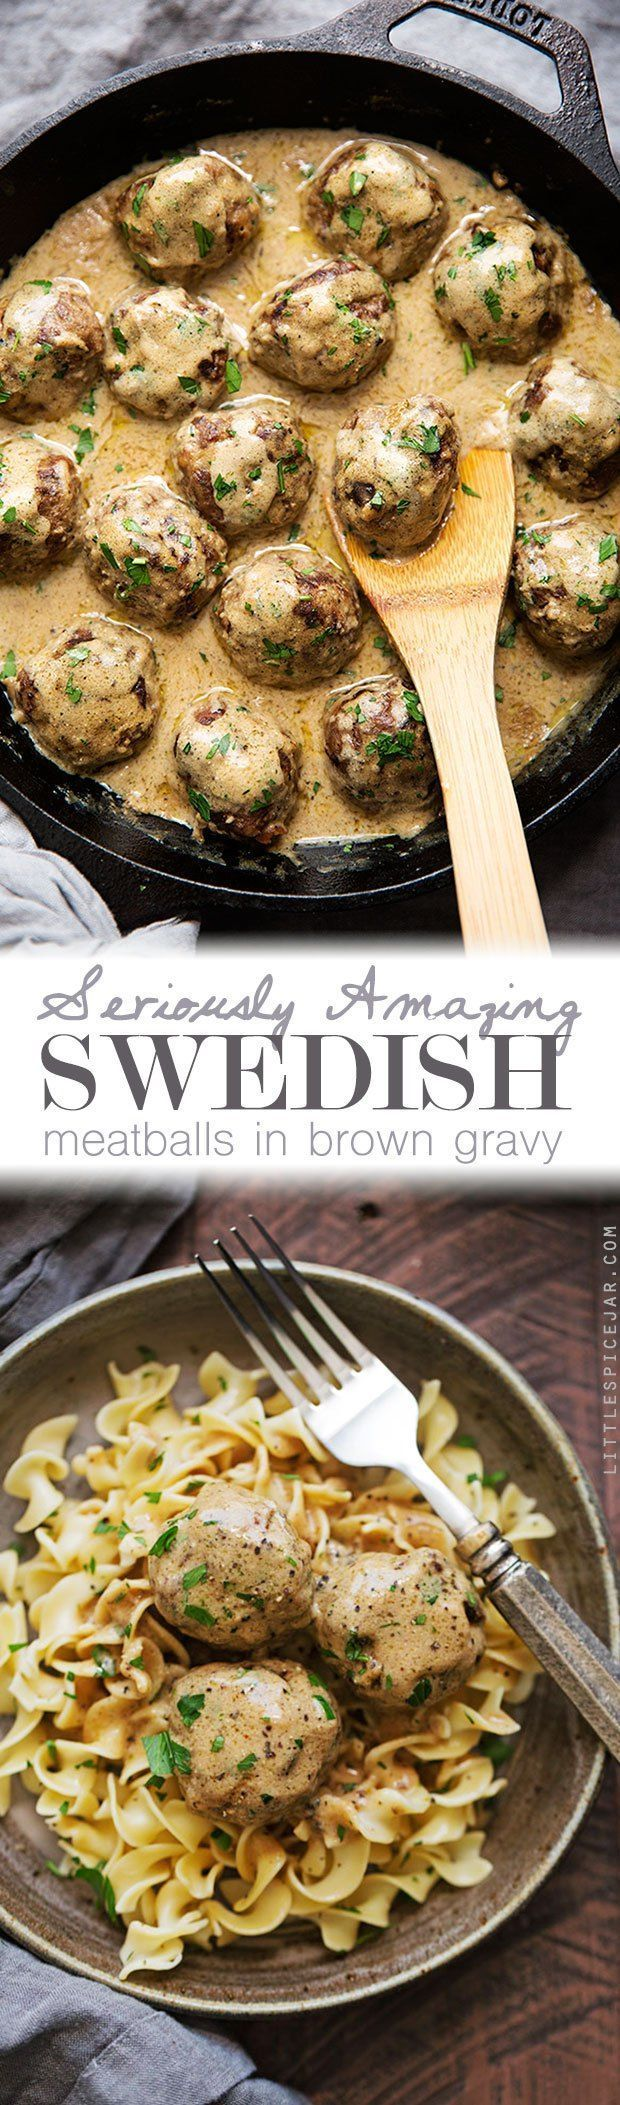 Seriously Amazing Swedish Meatballs in Brown Gravy - hearty and comforting meatballs in the most delicious brown gravy ever! #swedishmeatballs #browngravy #meatballs | http://Littlespicejar.com